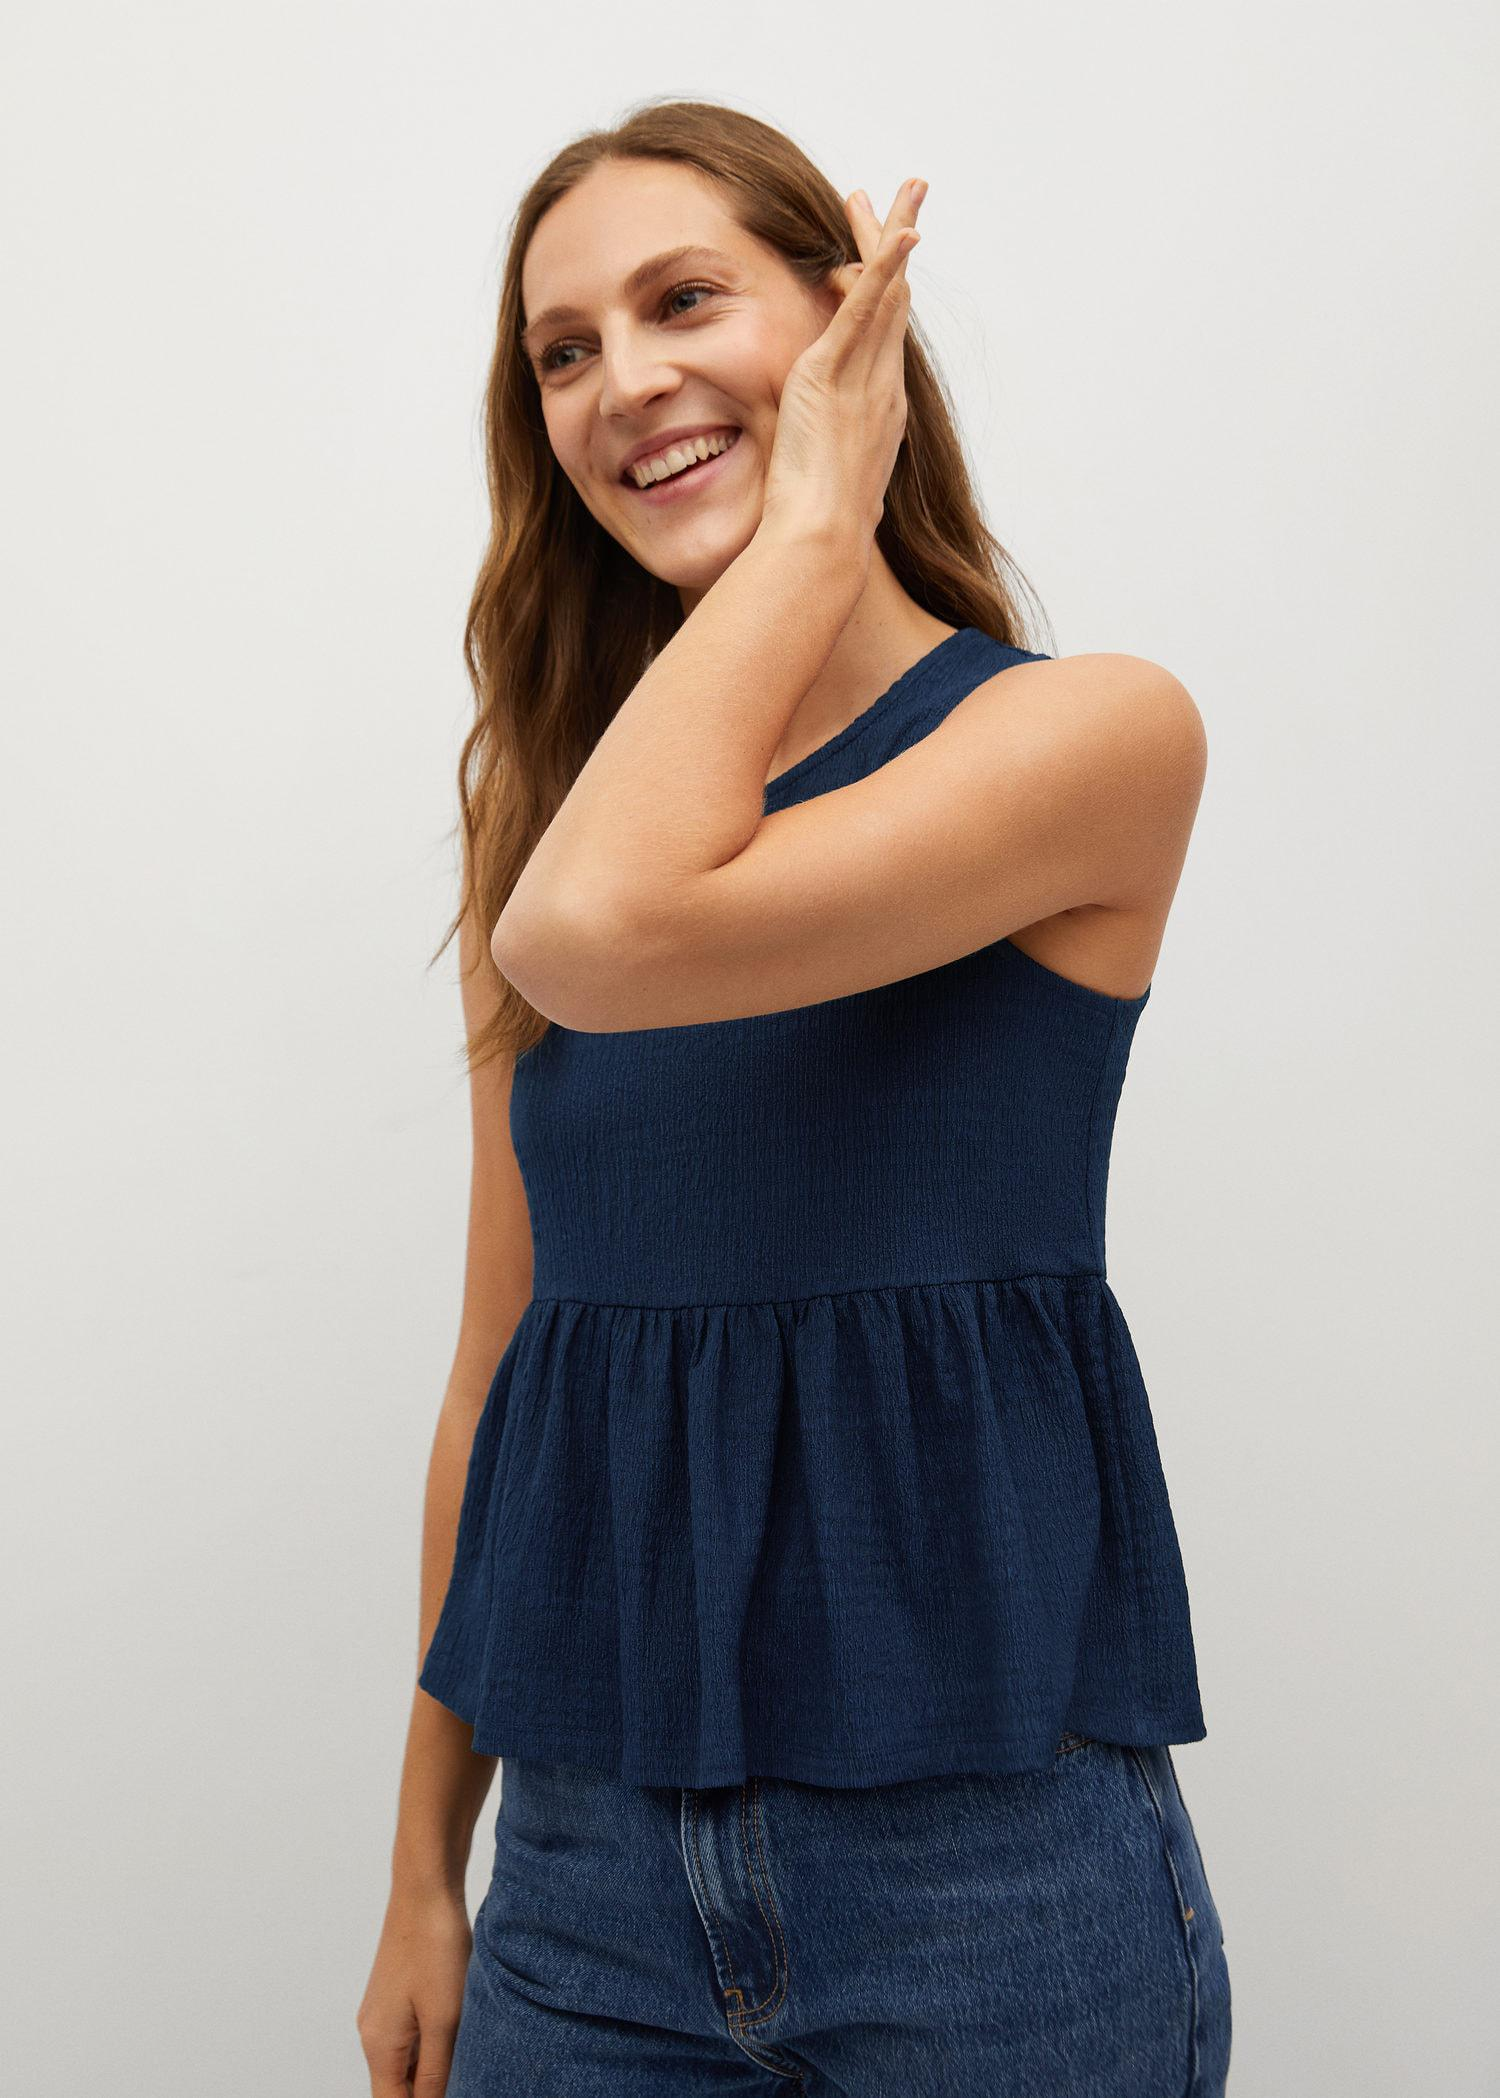 Top with ruffle texture